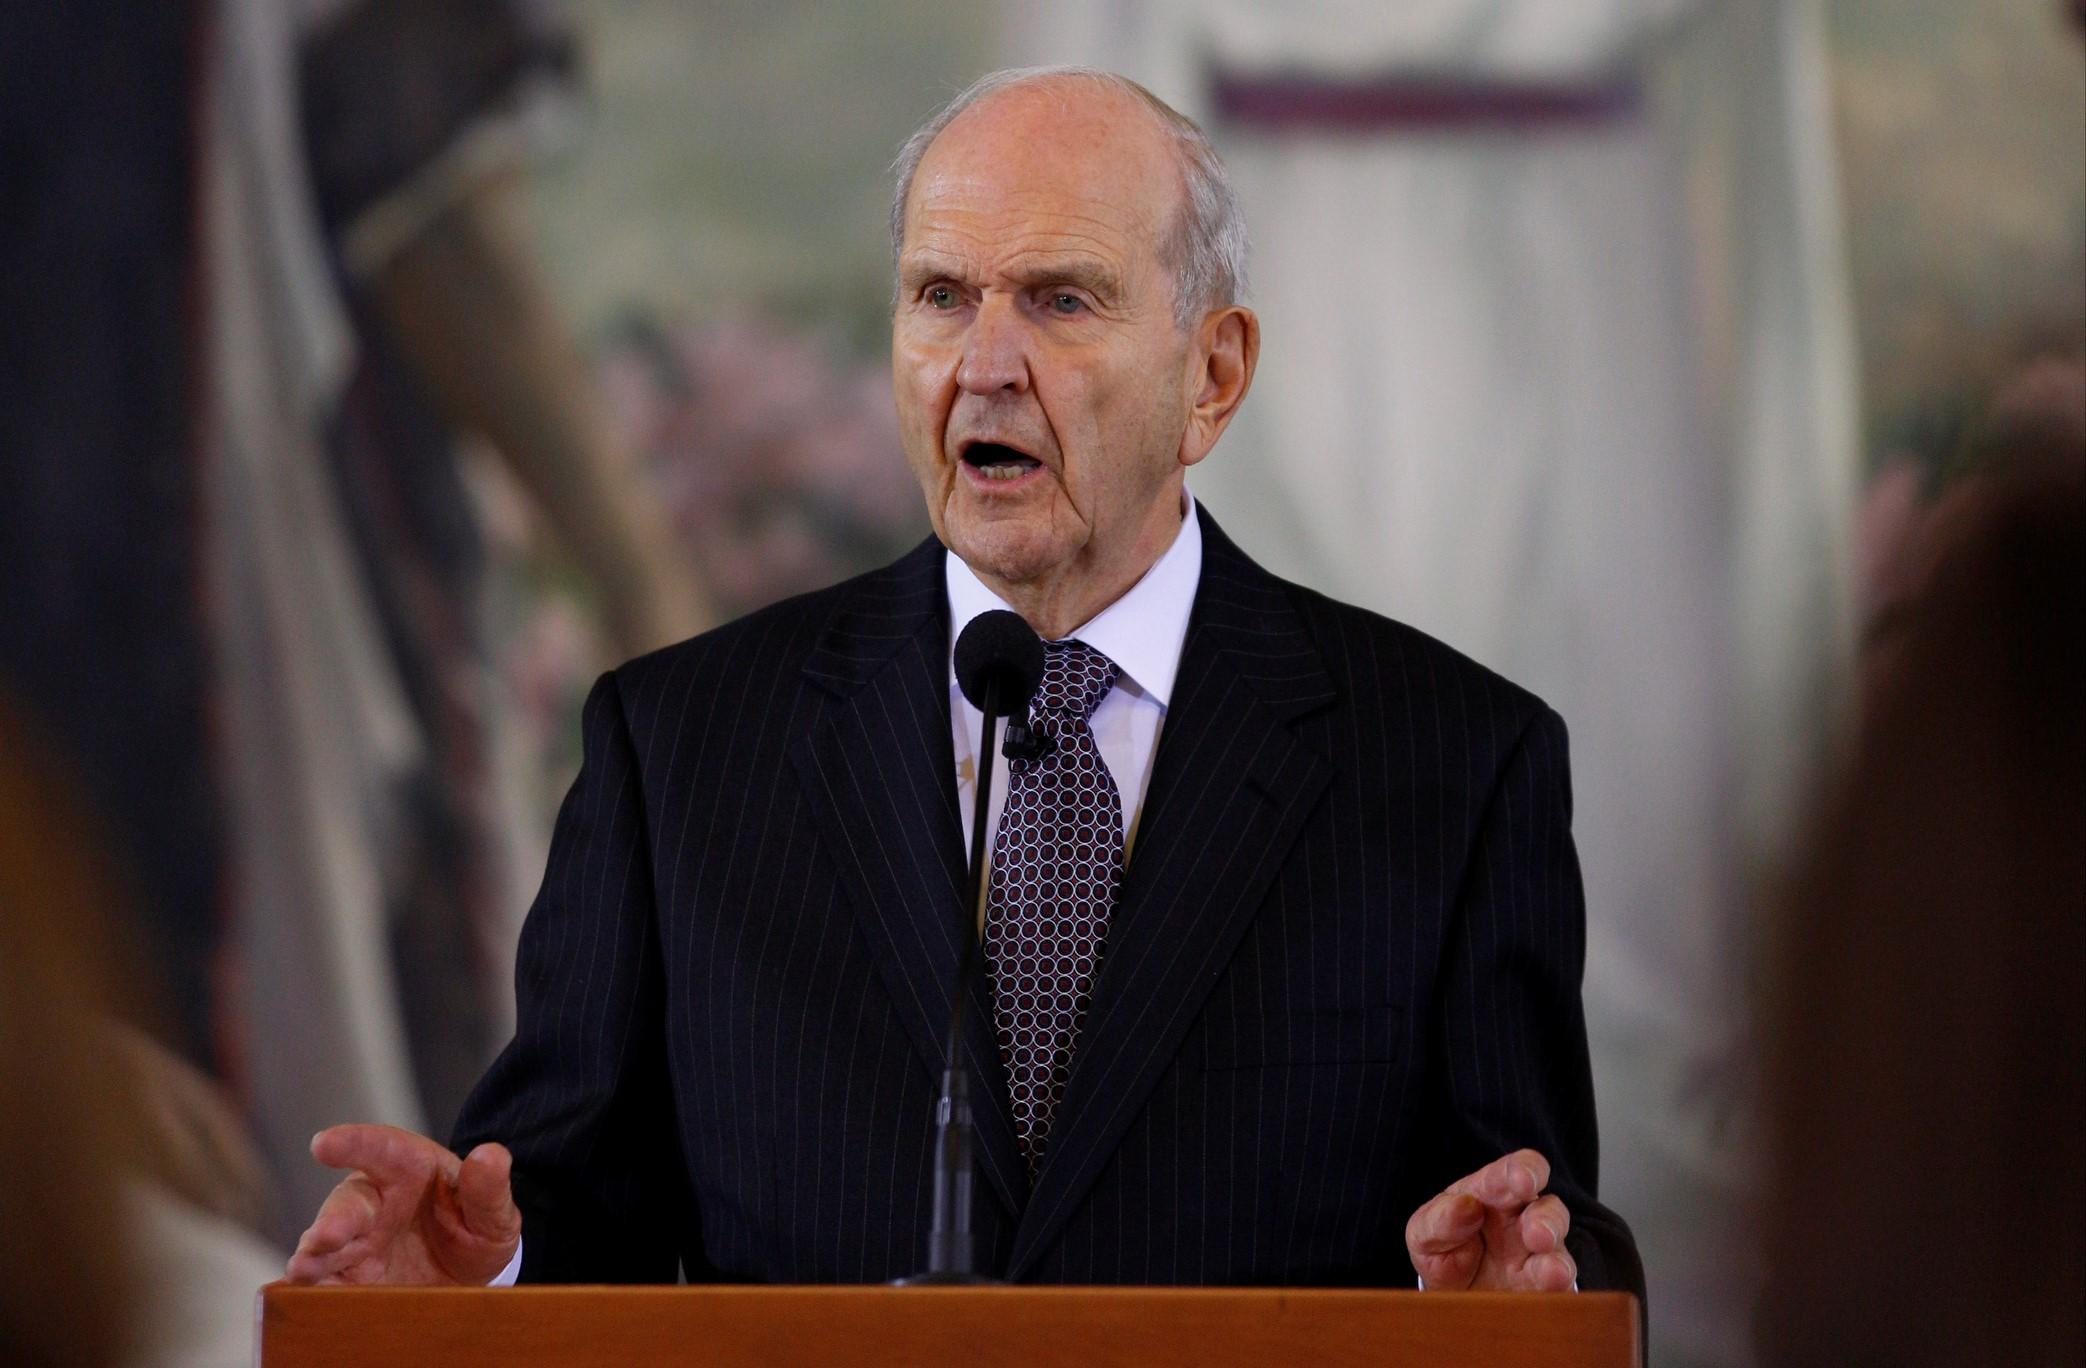 Nelson, the New President of the LDS Church